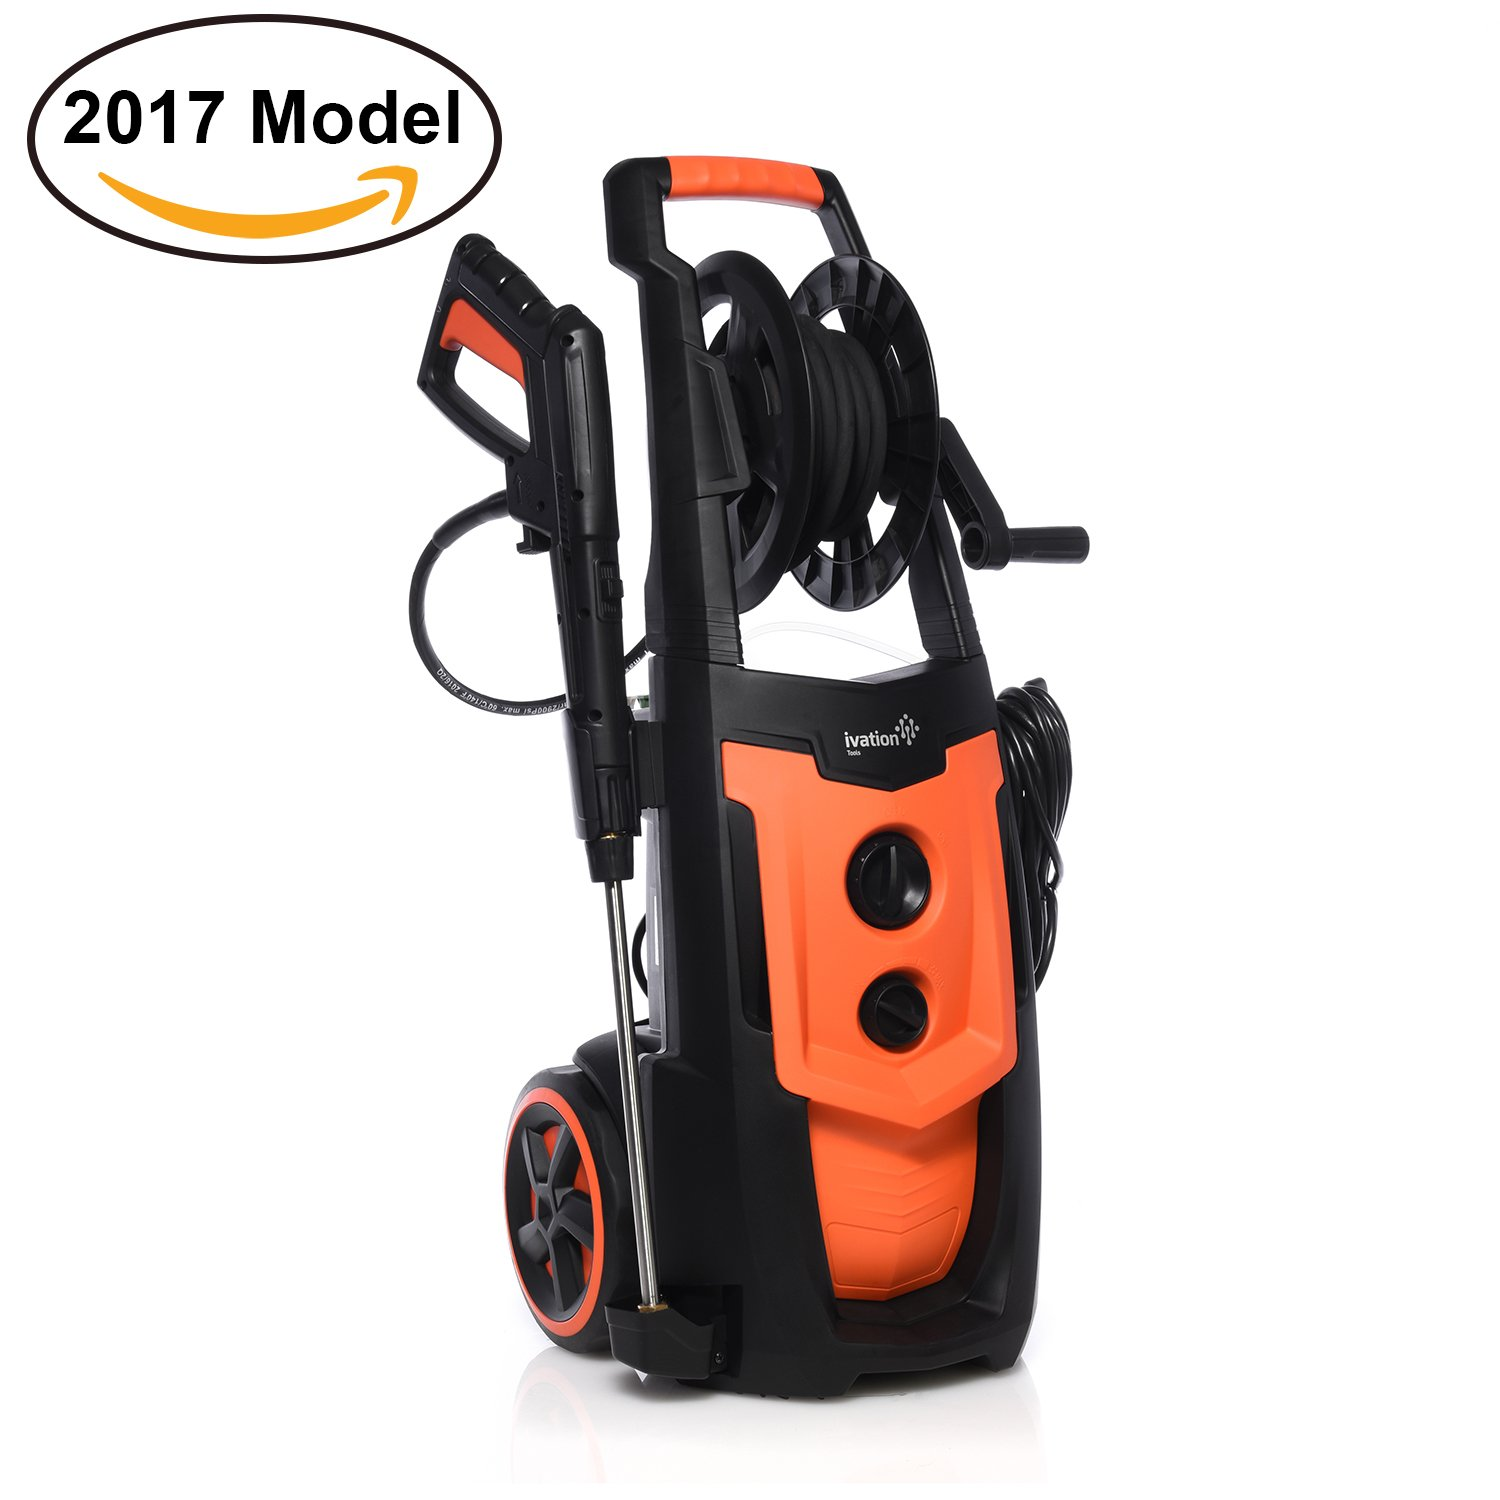 Ivation Electric Pressure Washer 2200 PSI 1.8 GPM with Power Hose, 5 Interchangeable Nozzles for Gun Wand, With Removable Soap Dispenser